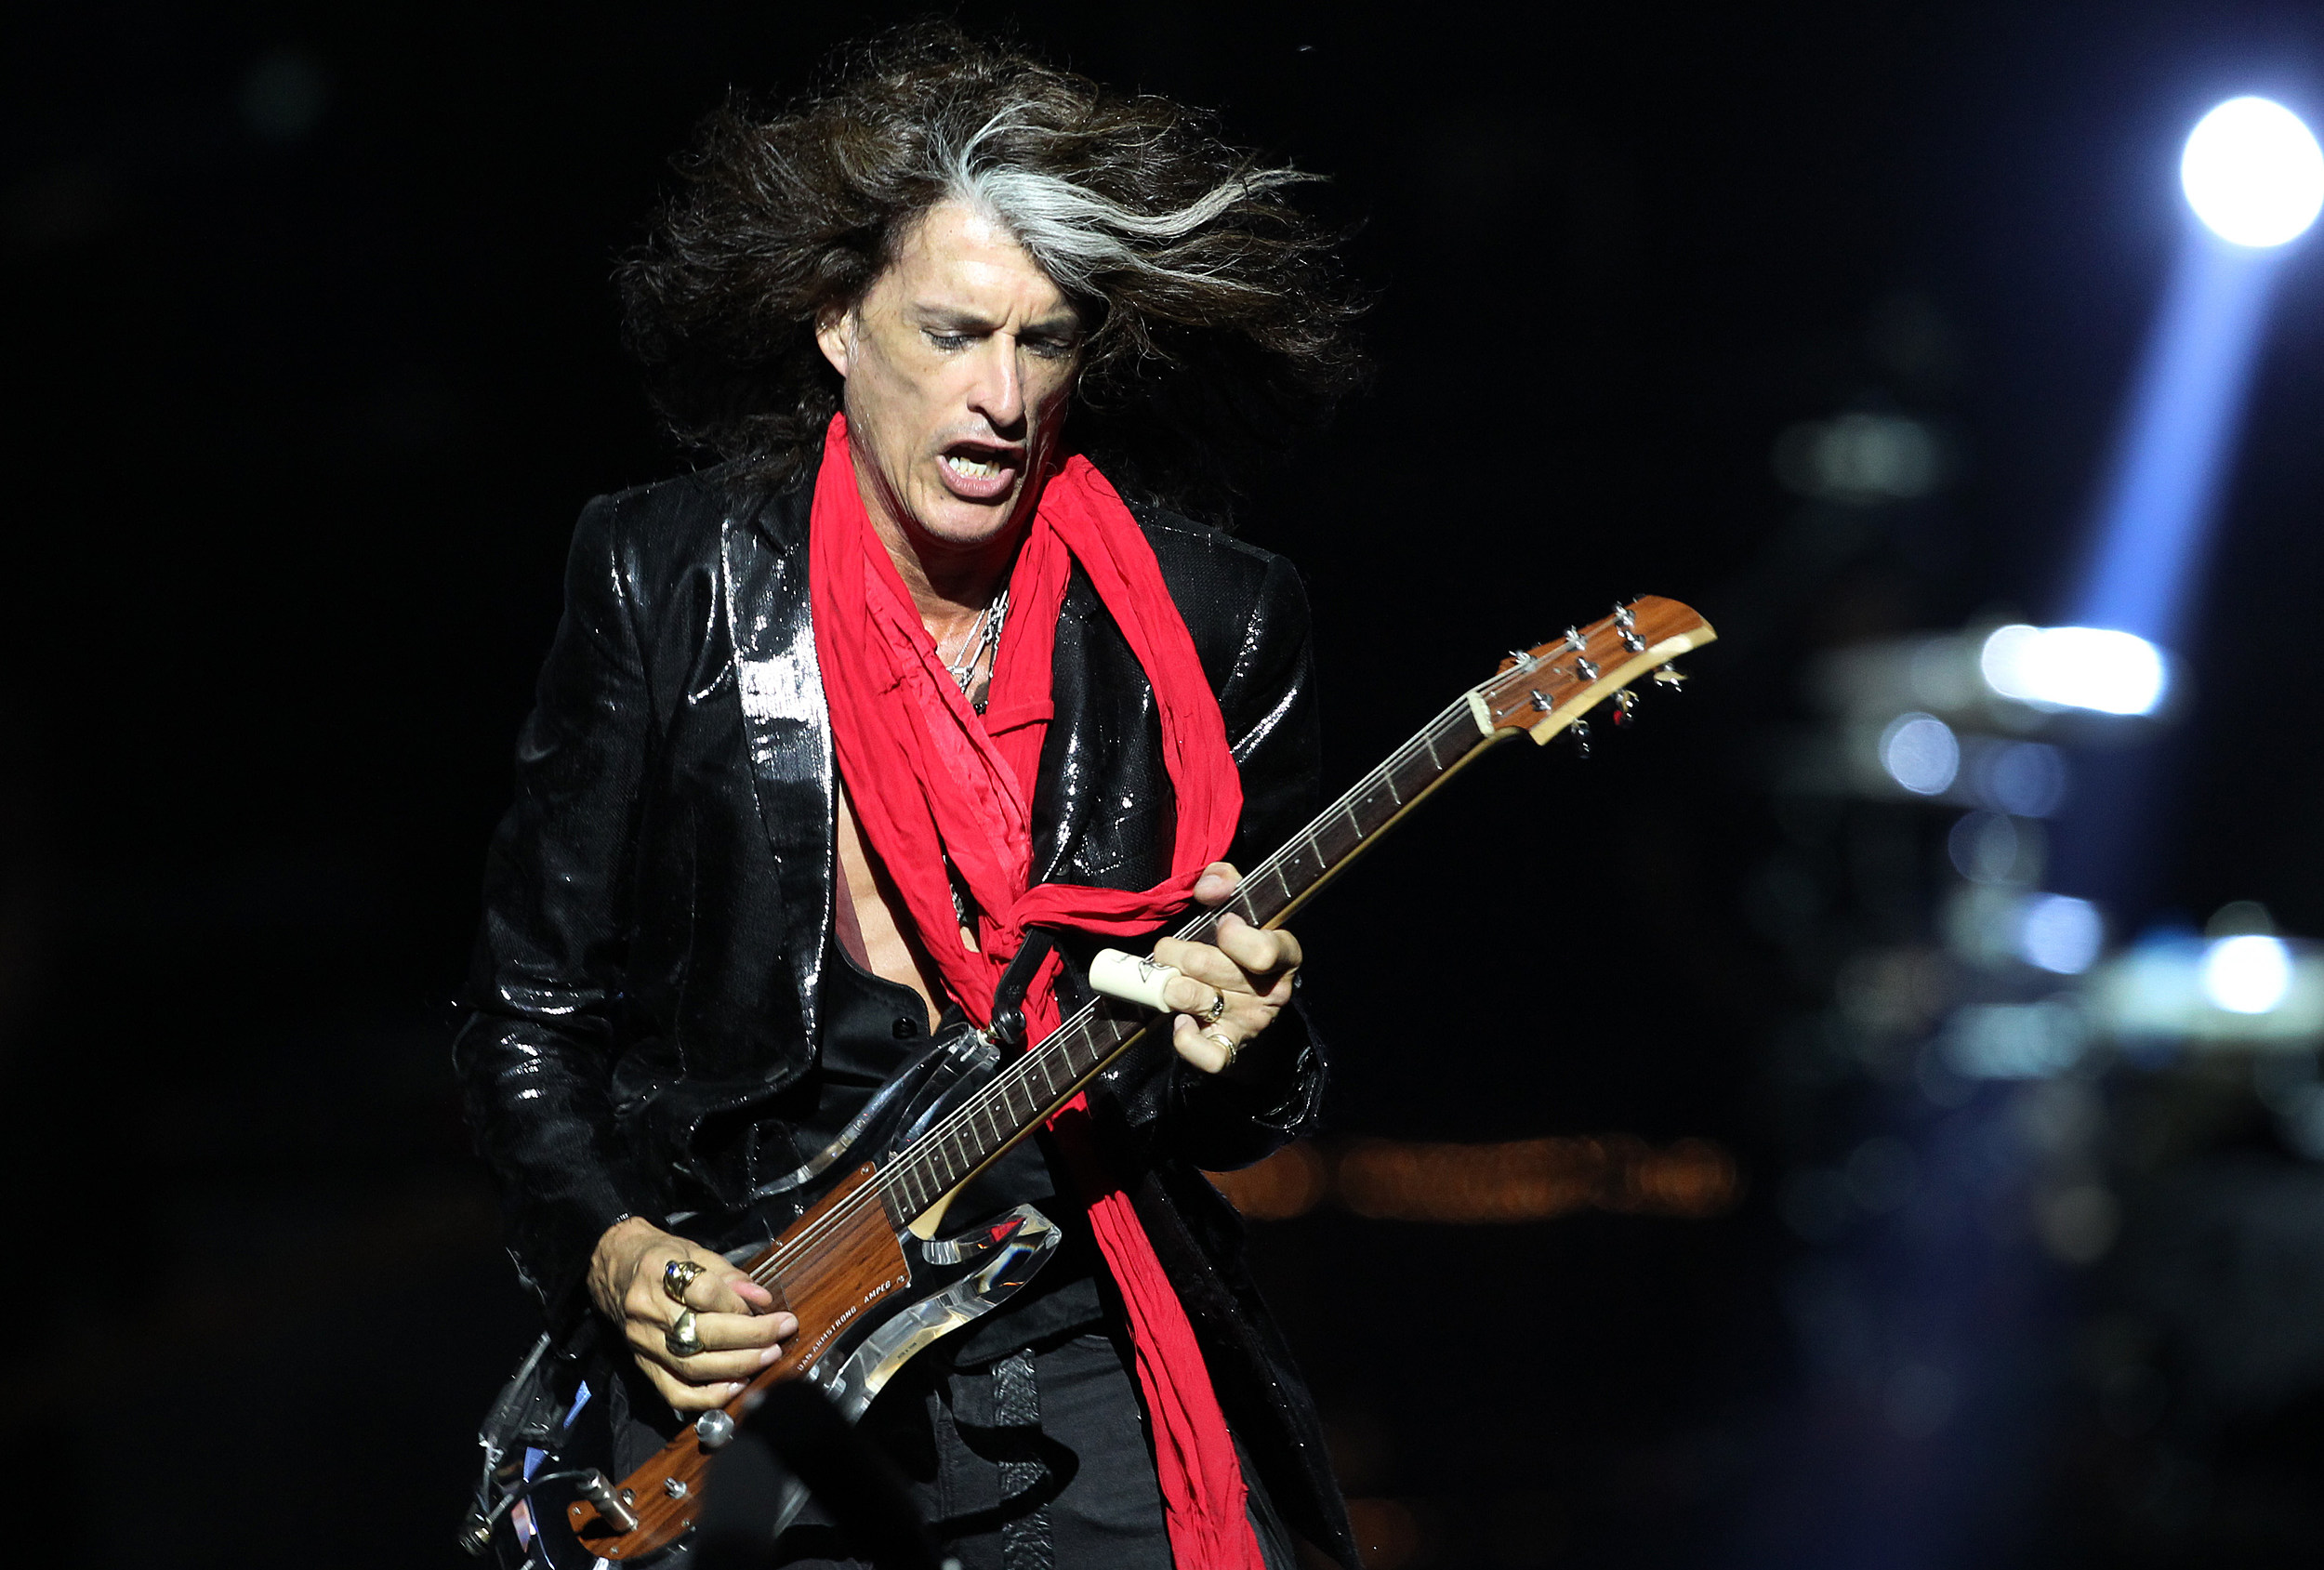 Alice Cooper, Hollywood Vampires on Aerosmith Joe Perry's collapse and condition